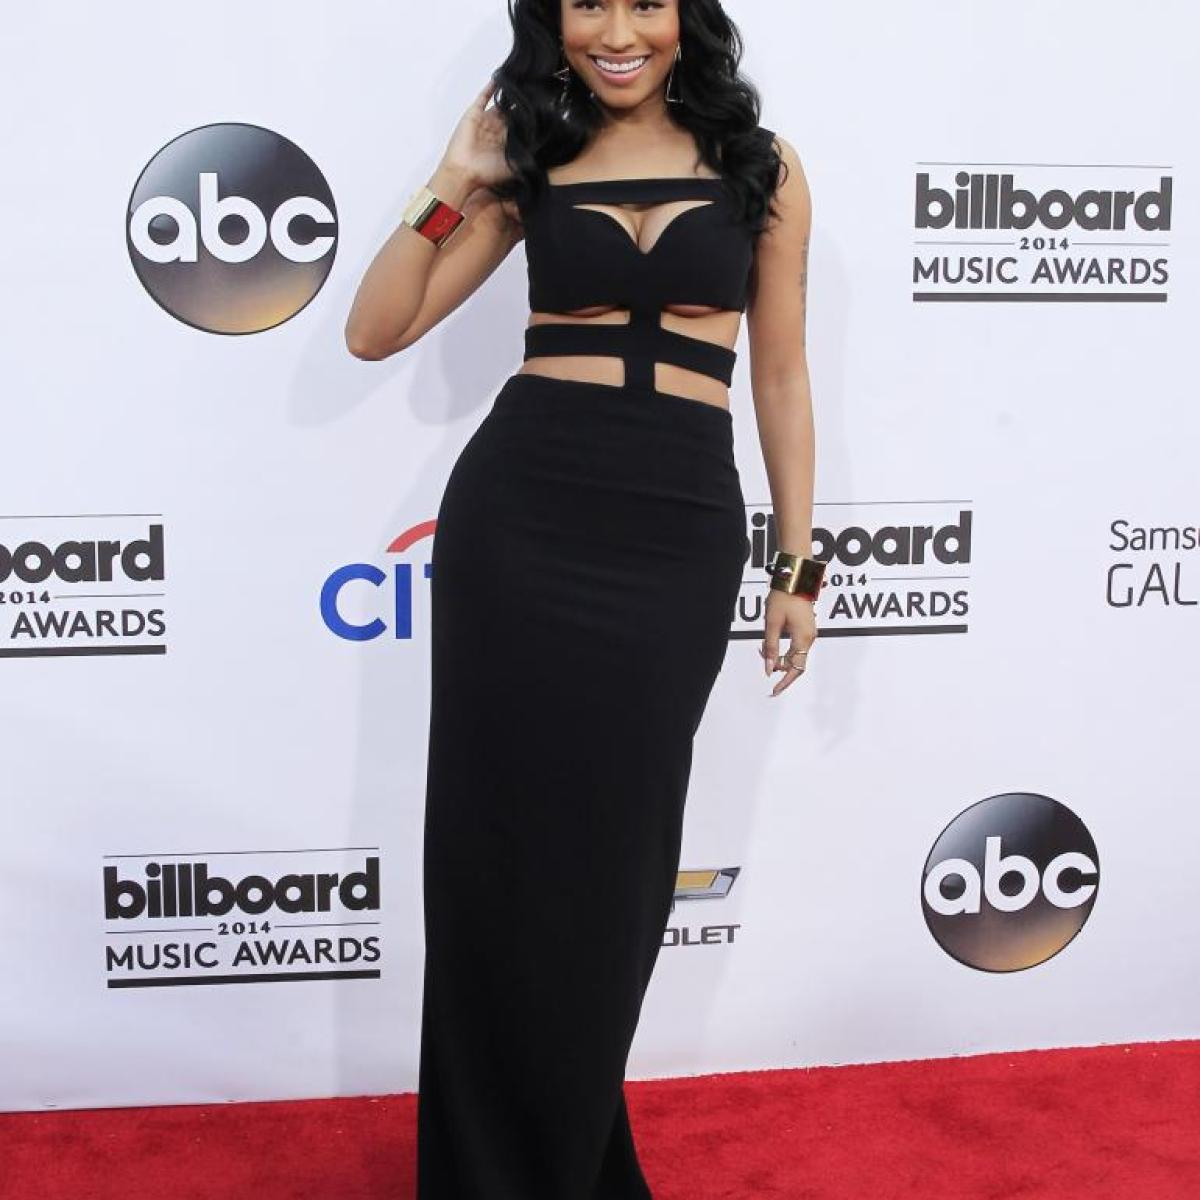 nicki-minaj-billboard-awards-2014_McQueen